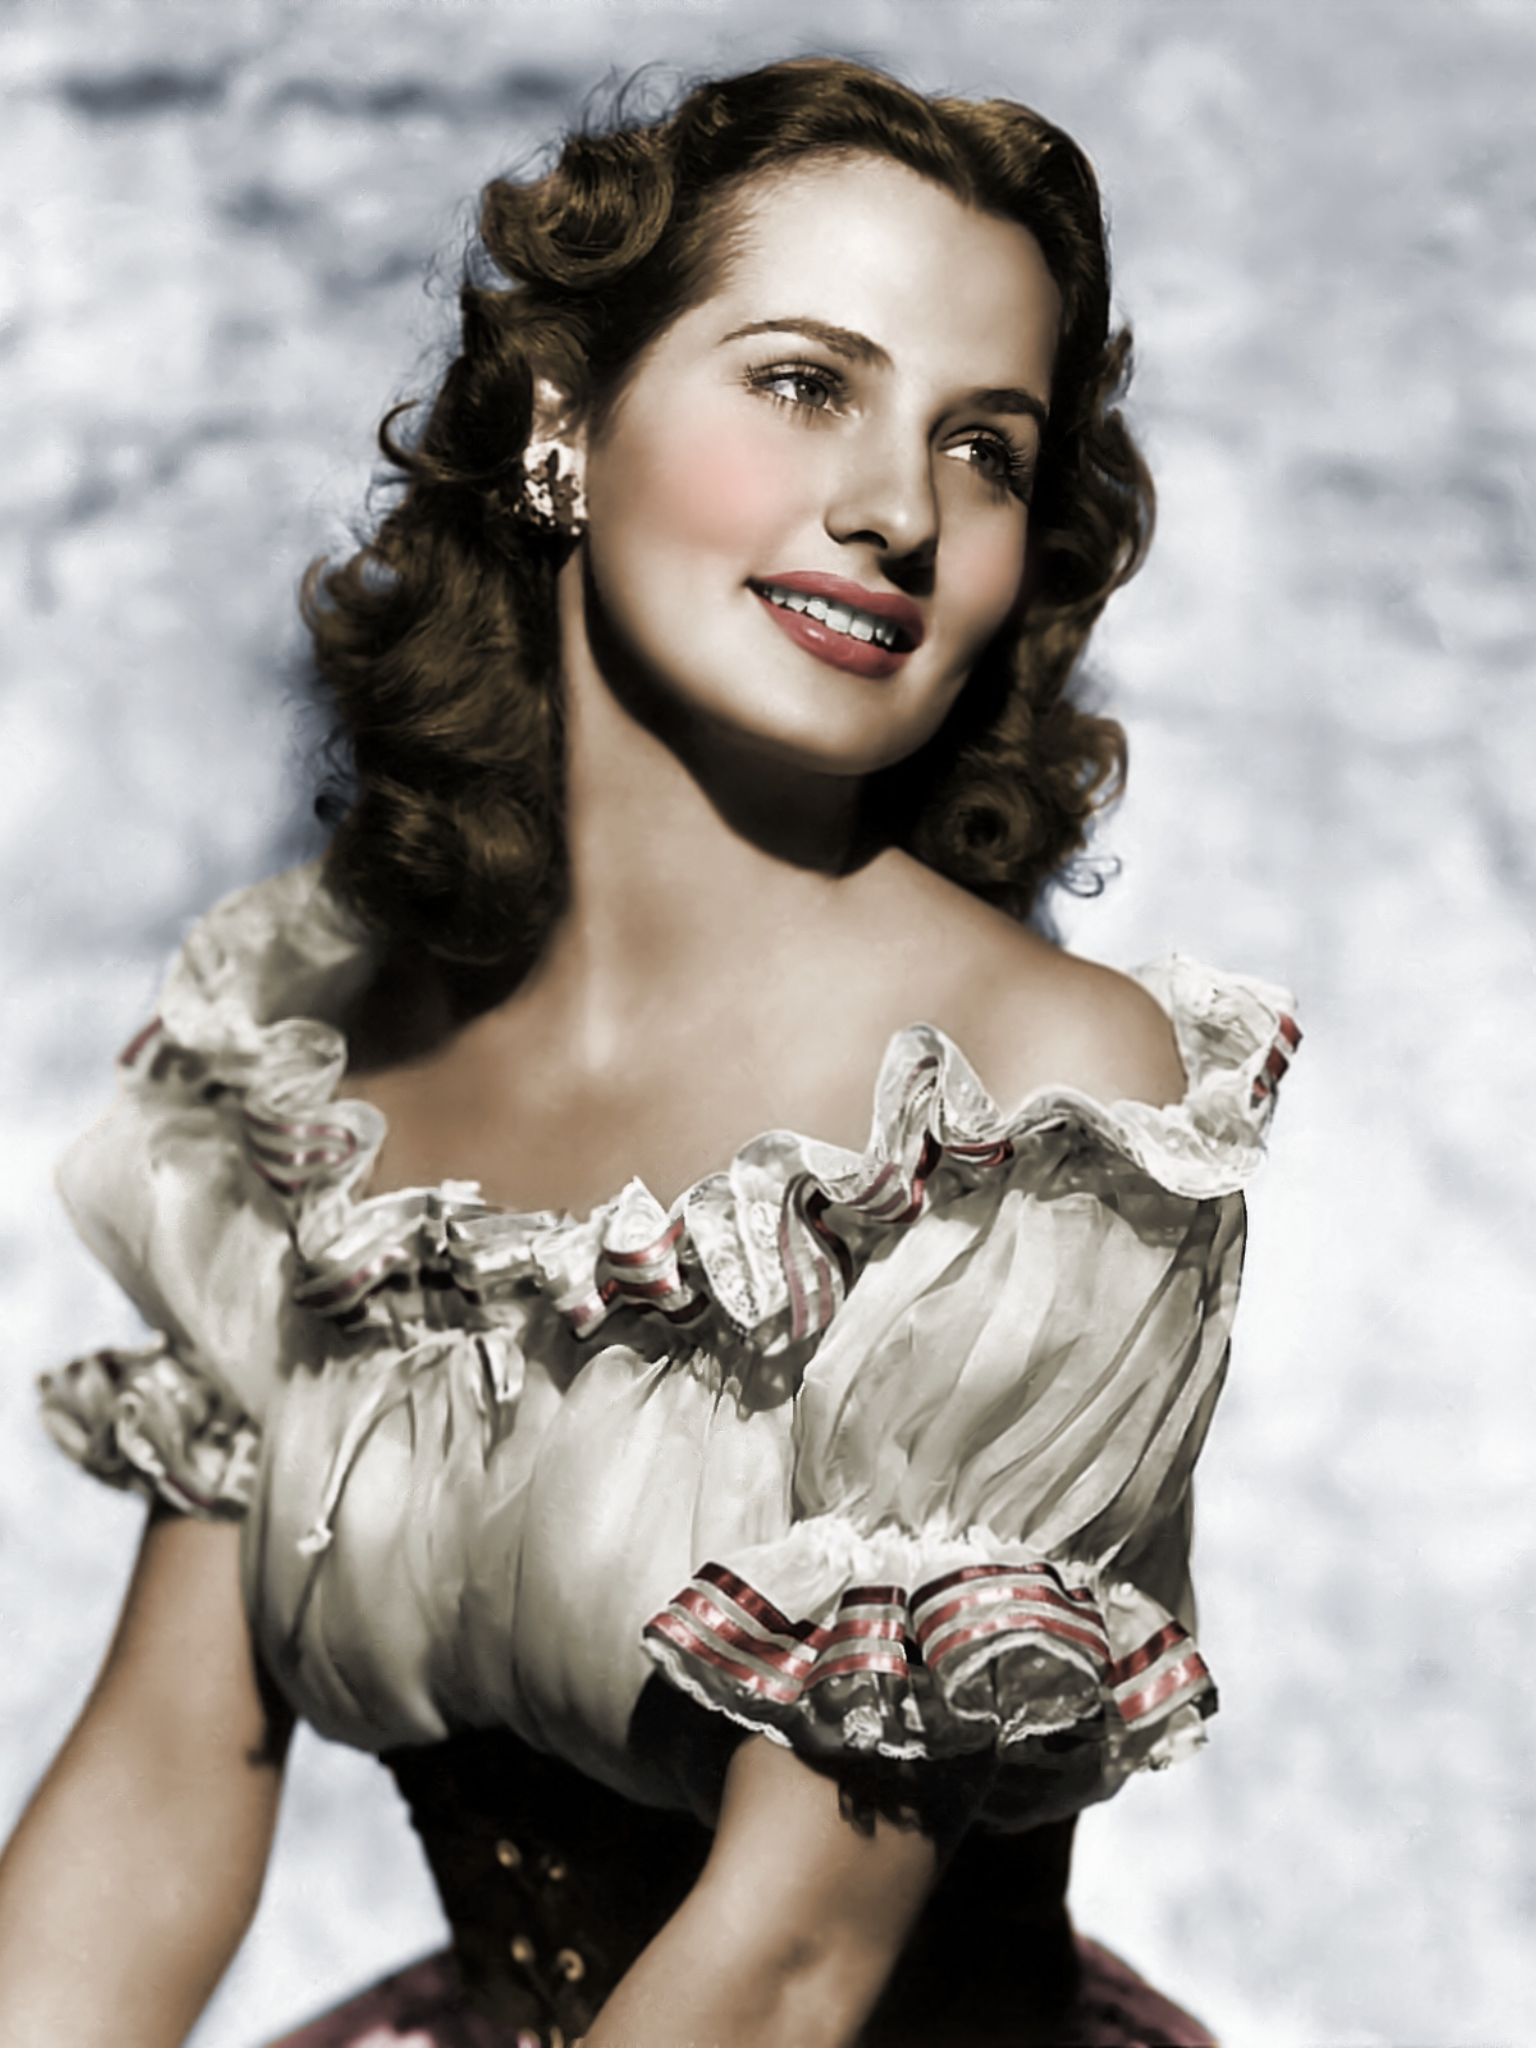 Brenda Marshall naked (91 photos), Pussy, Cleavage, Instagram, legs 2020